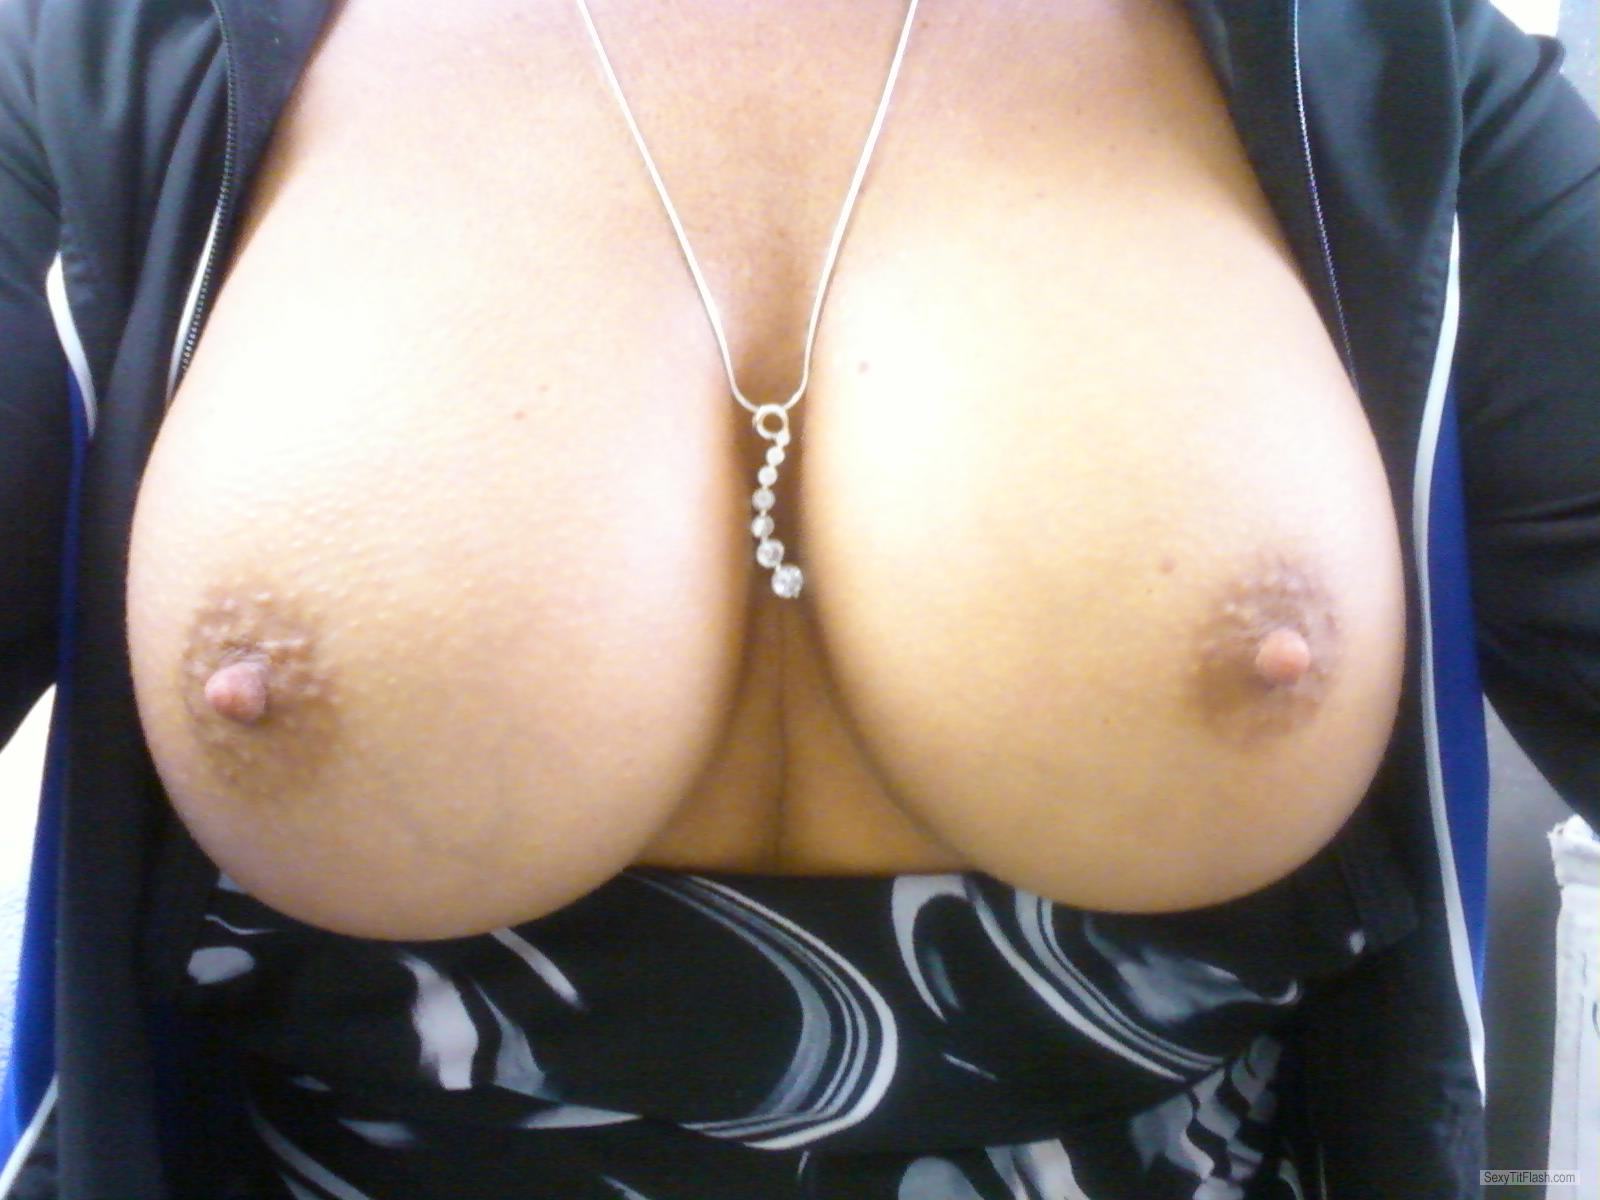 My Big Tits Fun Girls